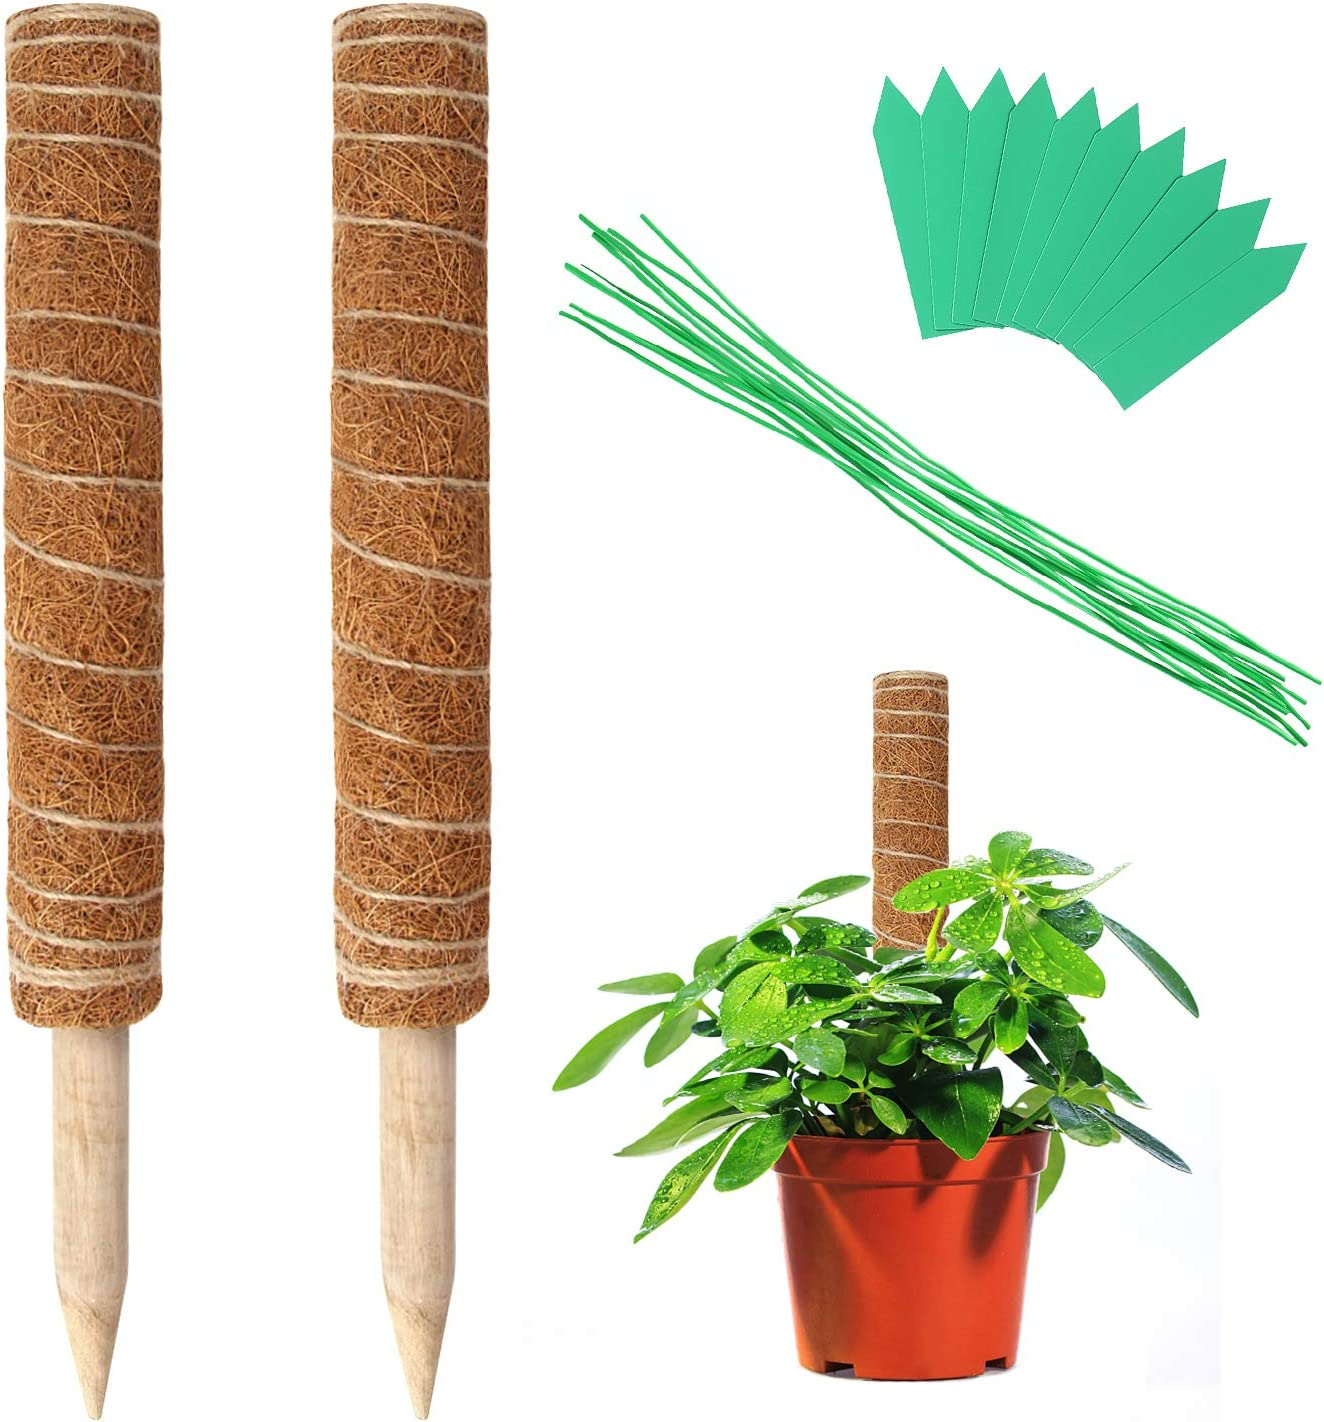 Augshy 2 Pcs 16 Inches Coir Totem Pole Moss Sticks for Indoor Plants Climbing, Plant Totem for Plant Support Extension, Creepers, with 10 Pcs Plant Labels and 10 Pcs Twist Ties